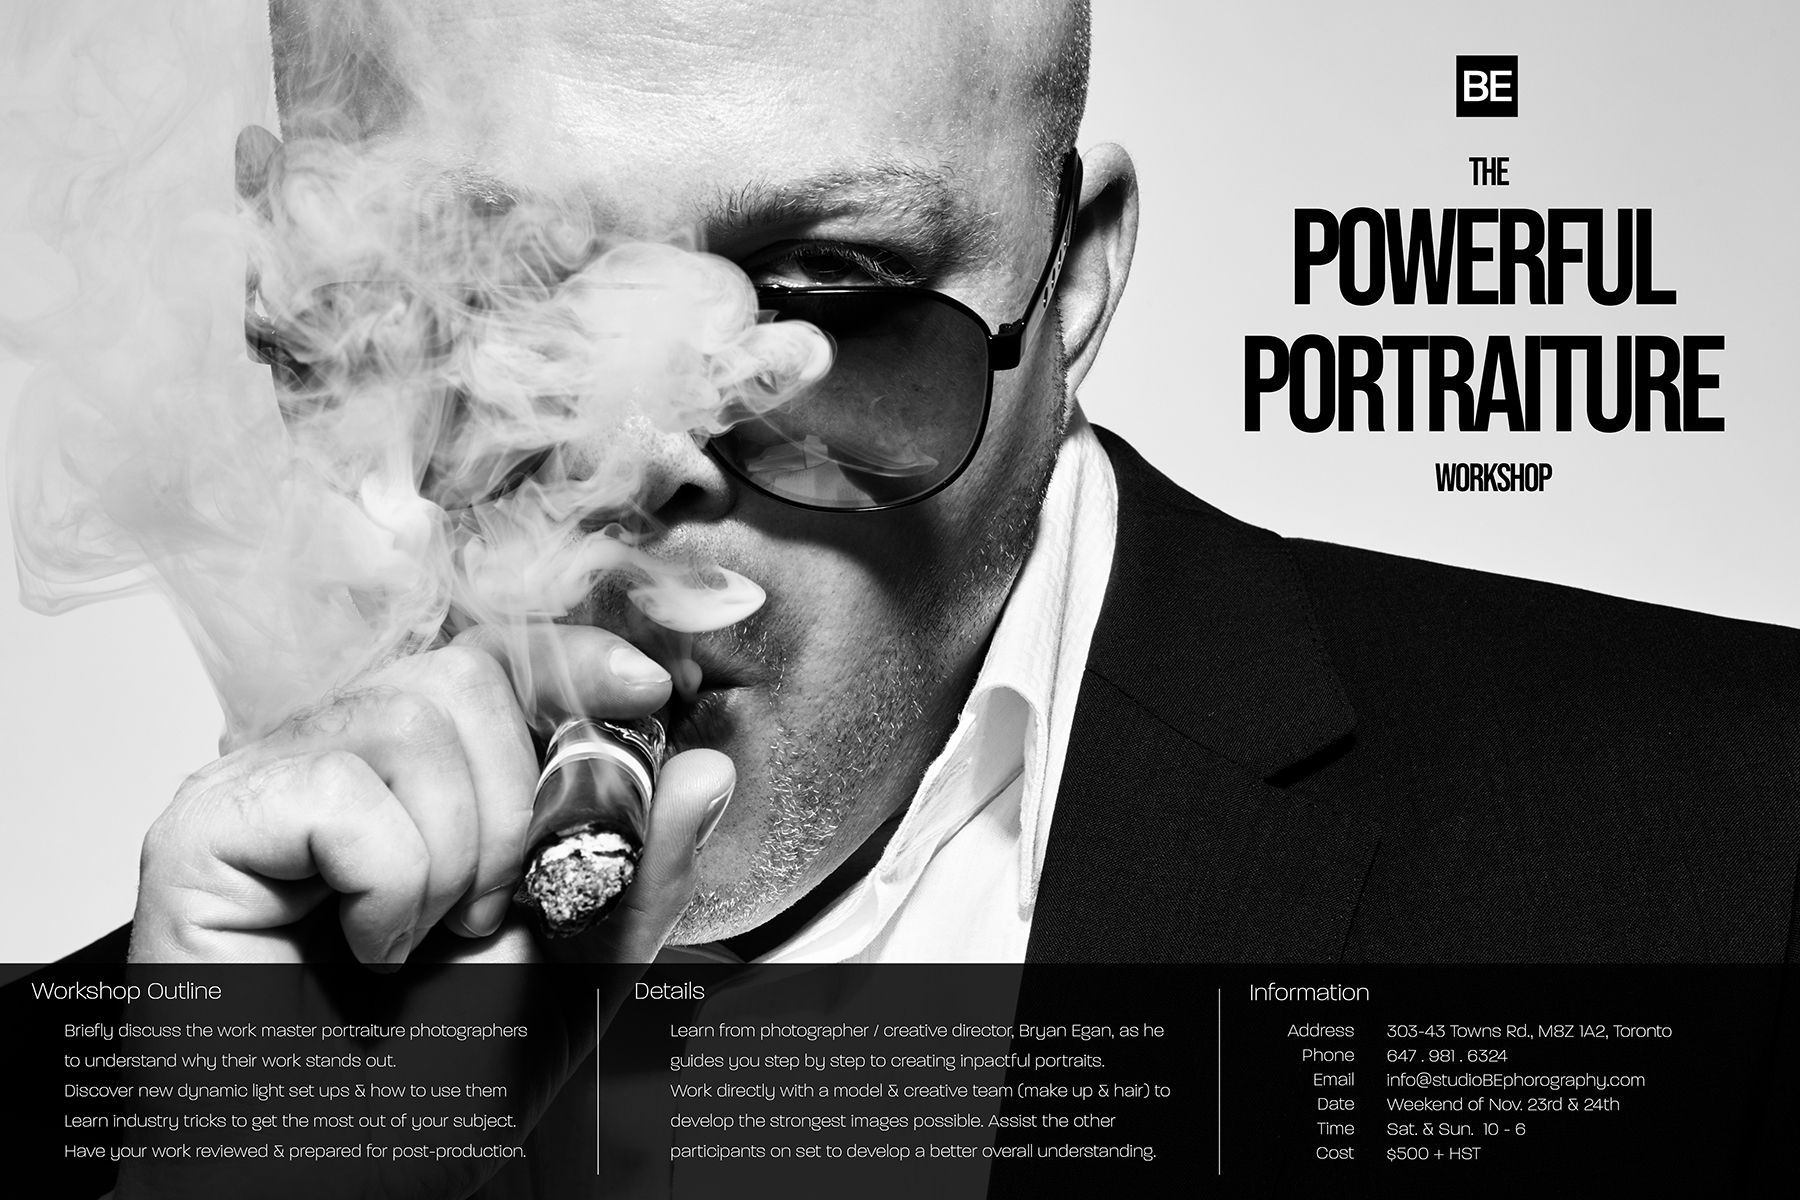 BE_The POWERFUL PORTRAITs Workshop